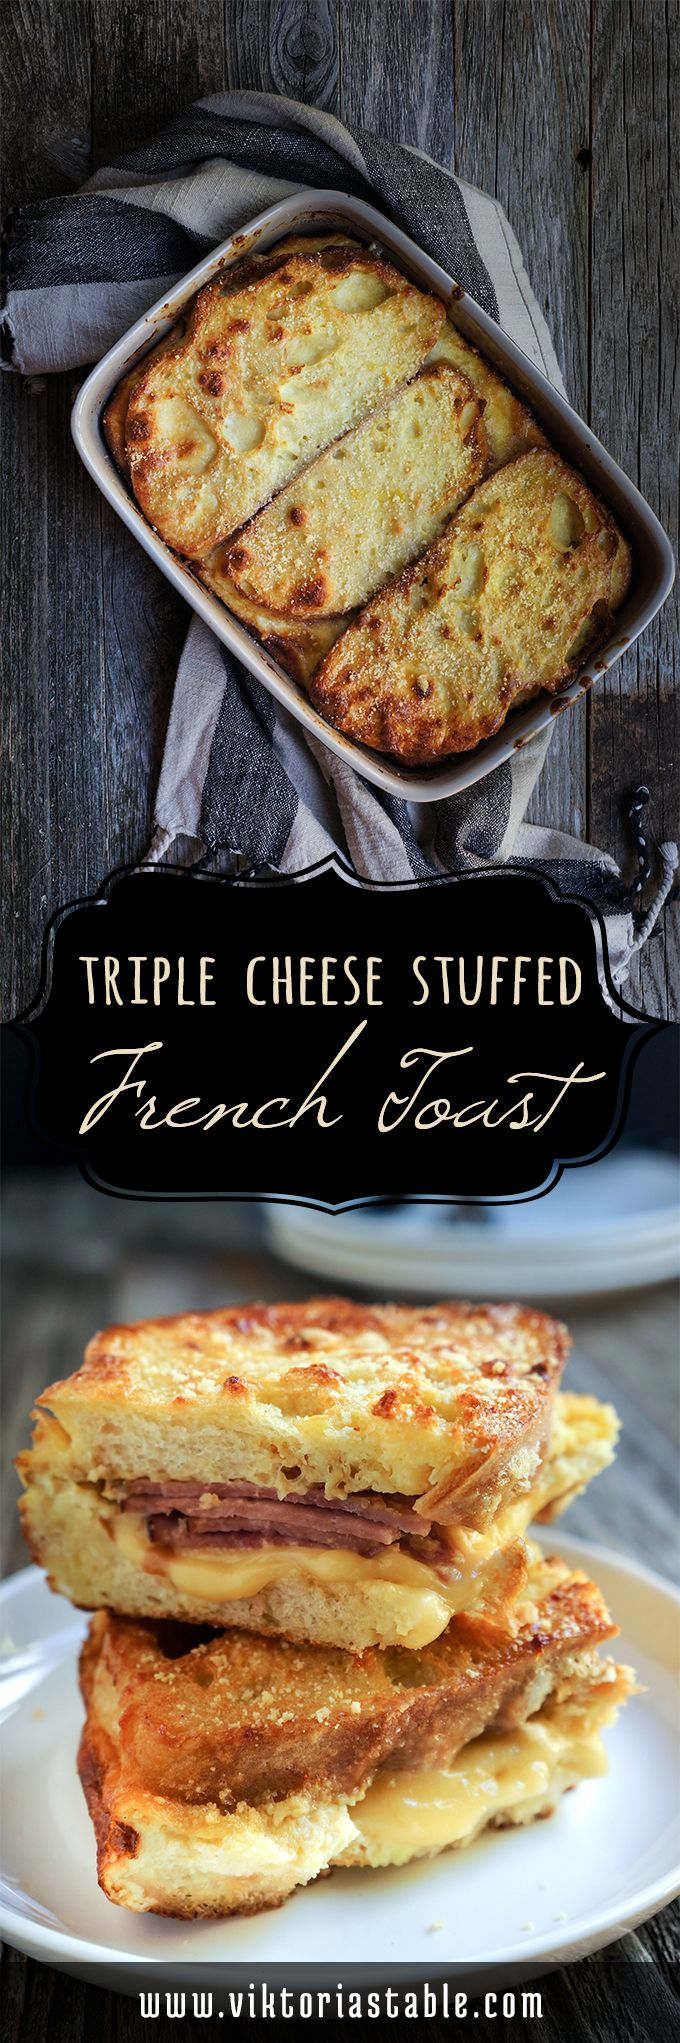 Triple cheese stuffed French toast - protein packed, and delicious, this recipe is a healthier alternative to the sweet fried French toast | www.viktoriastable.com